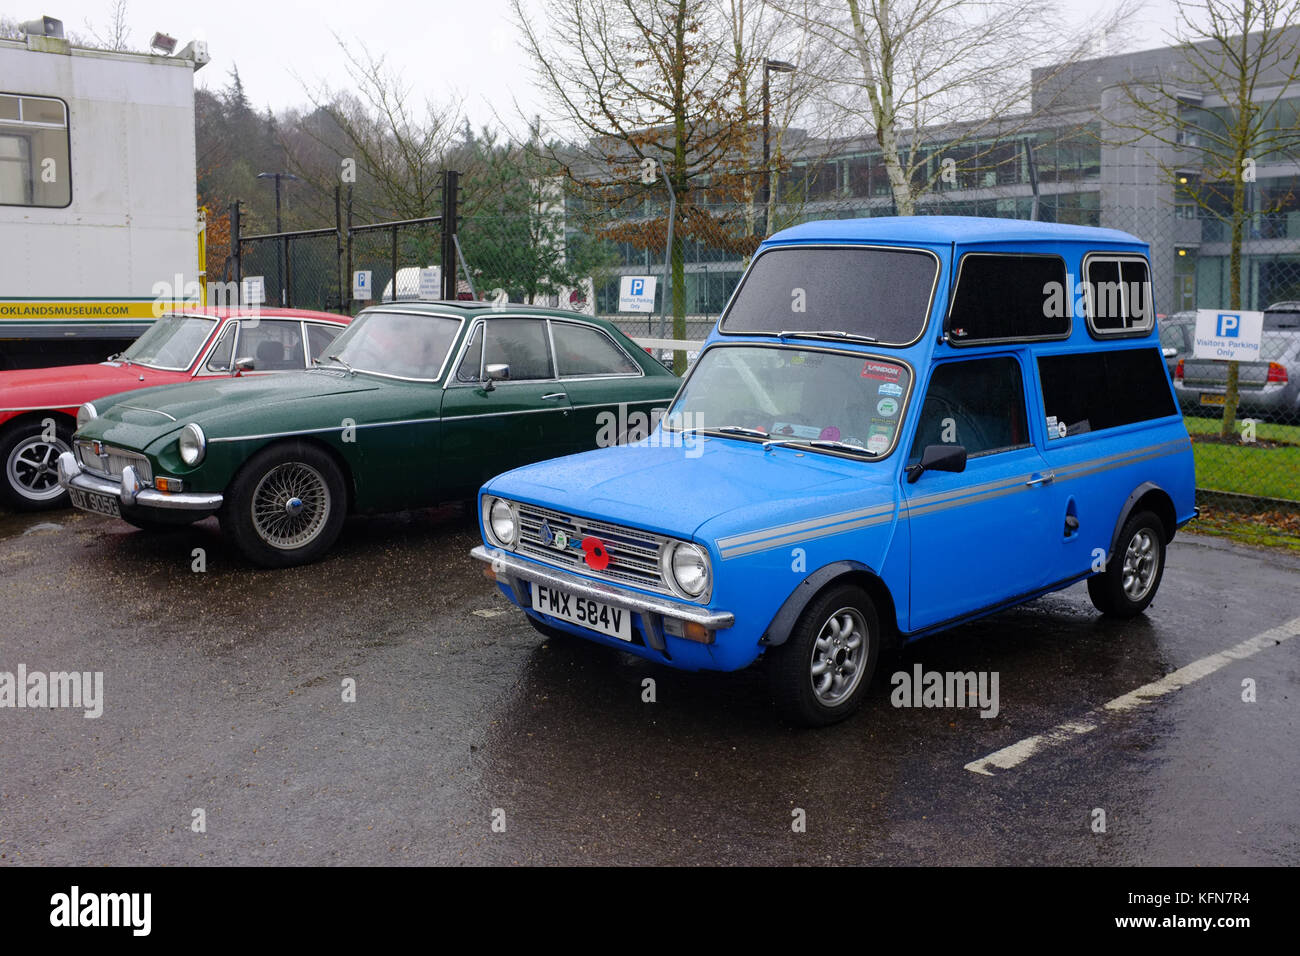 A classic mini modified to accommodate a wheelchair - Stock Image